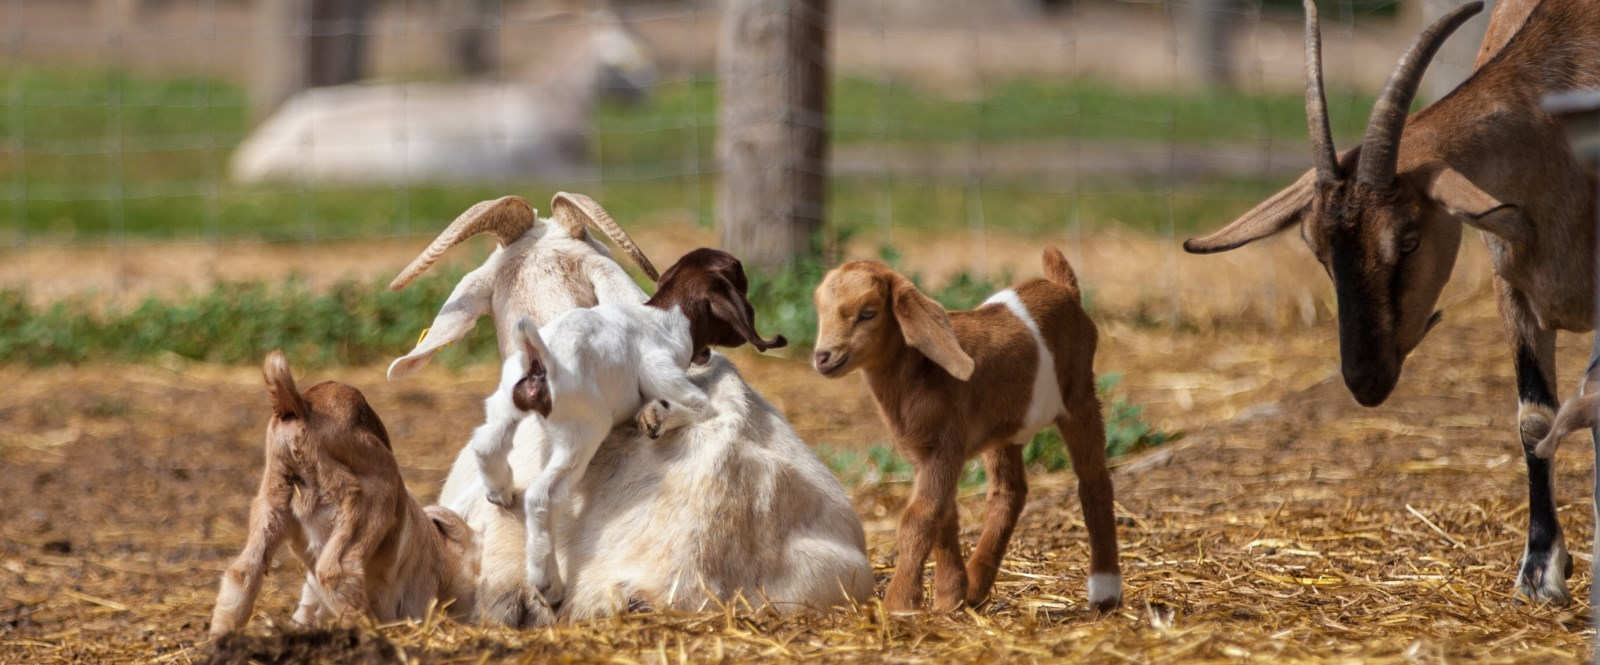 baby goats playing in pen